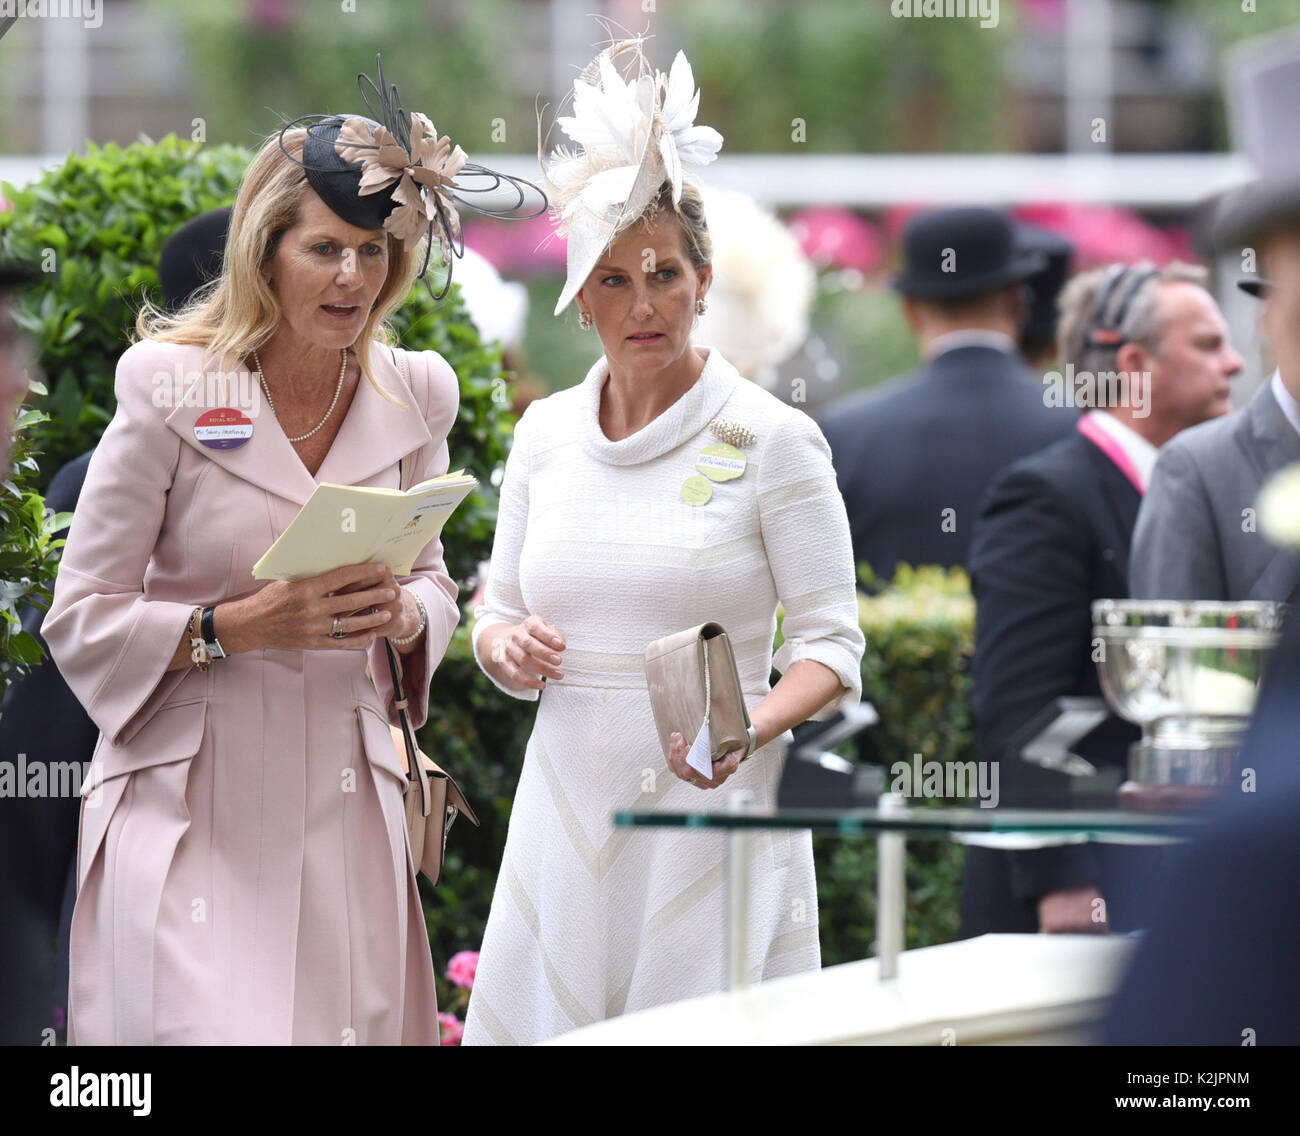 Photo Must Be Credited ©Alpha Press 079965 22/06/2017 Sophie Weatherby and Sophie Countess of Wessex at Royal Ascot Stock Photo